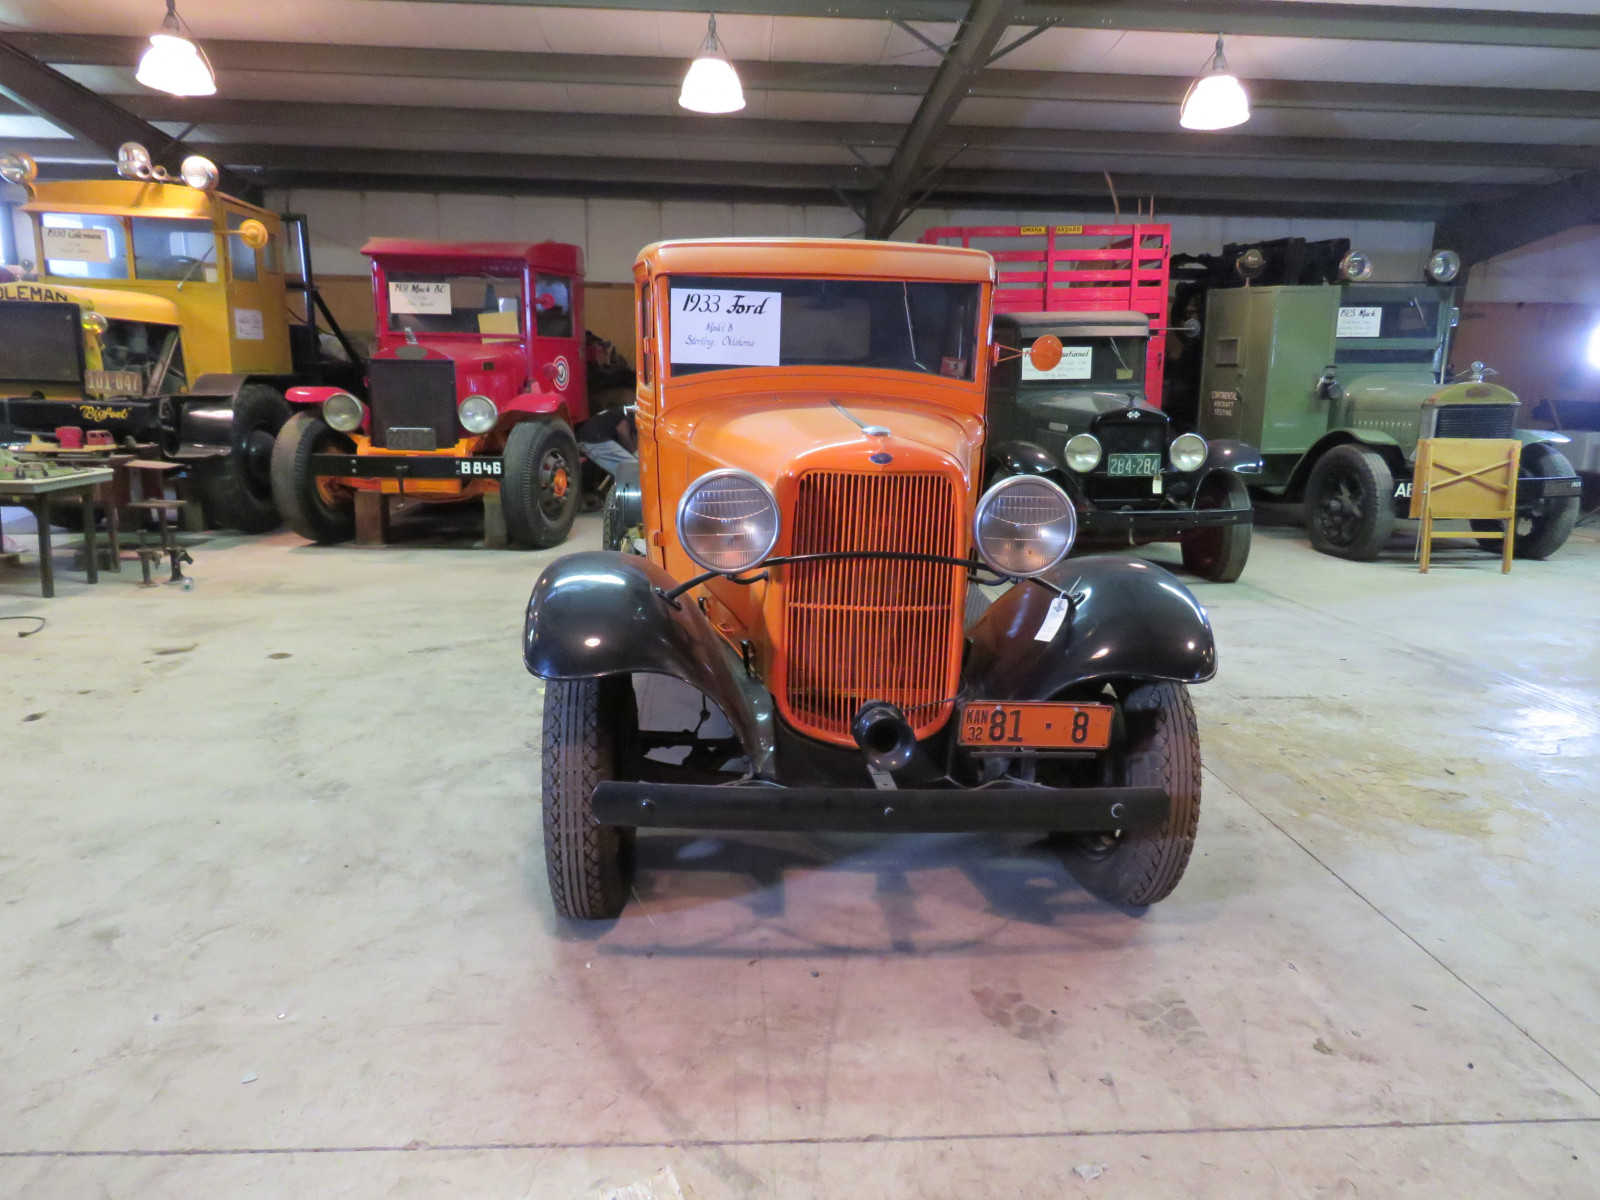 1932 1/2 Ford Model B Stake Bed Truck - Image 2